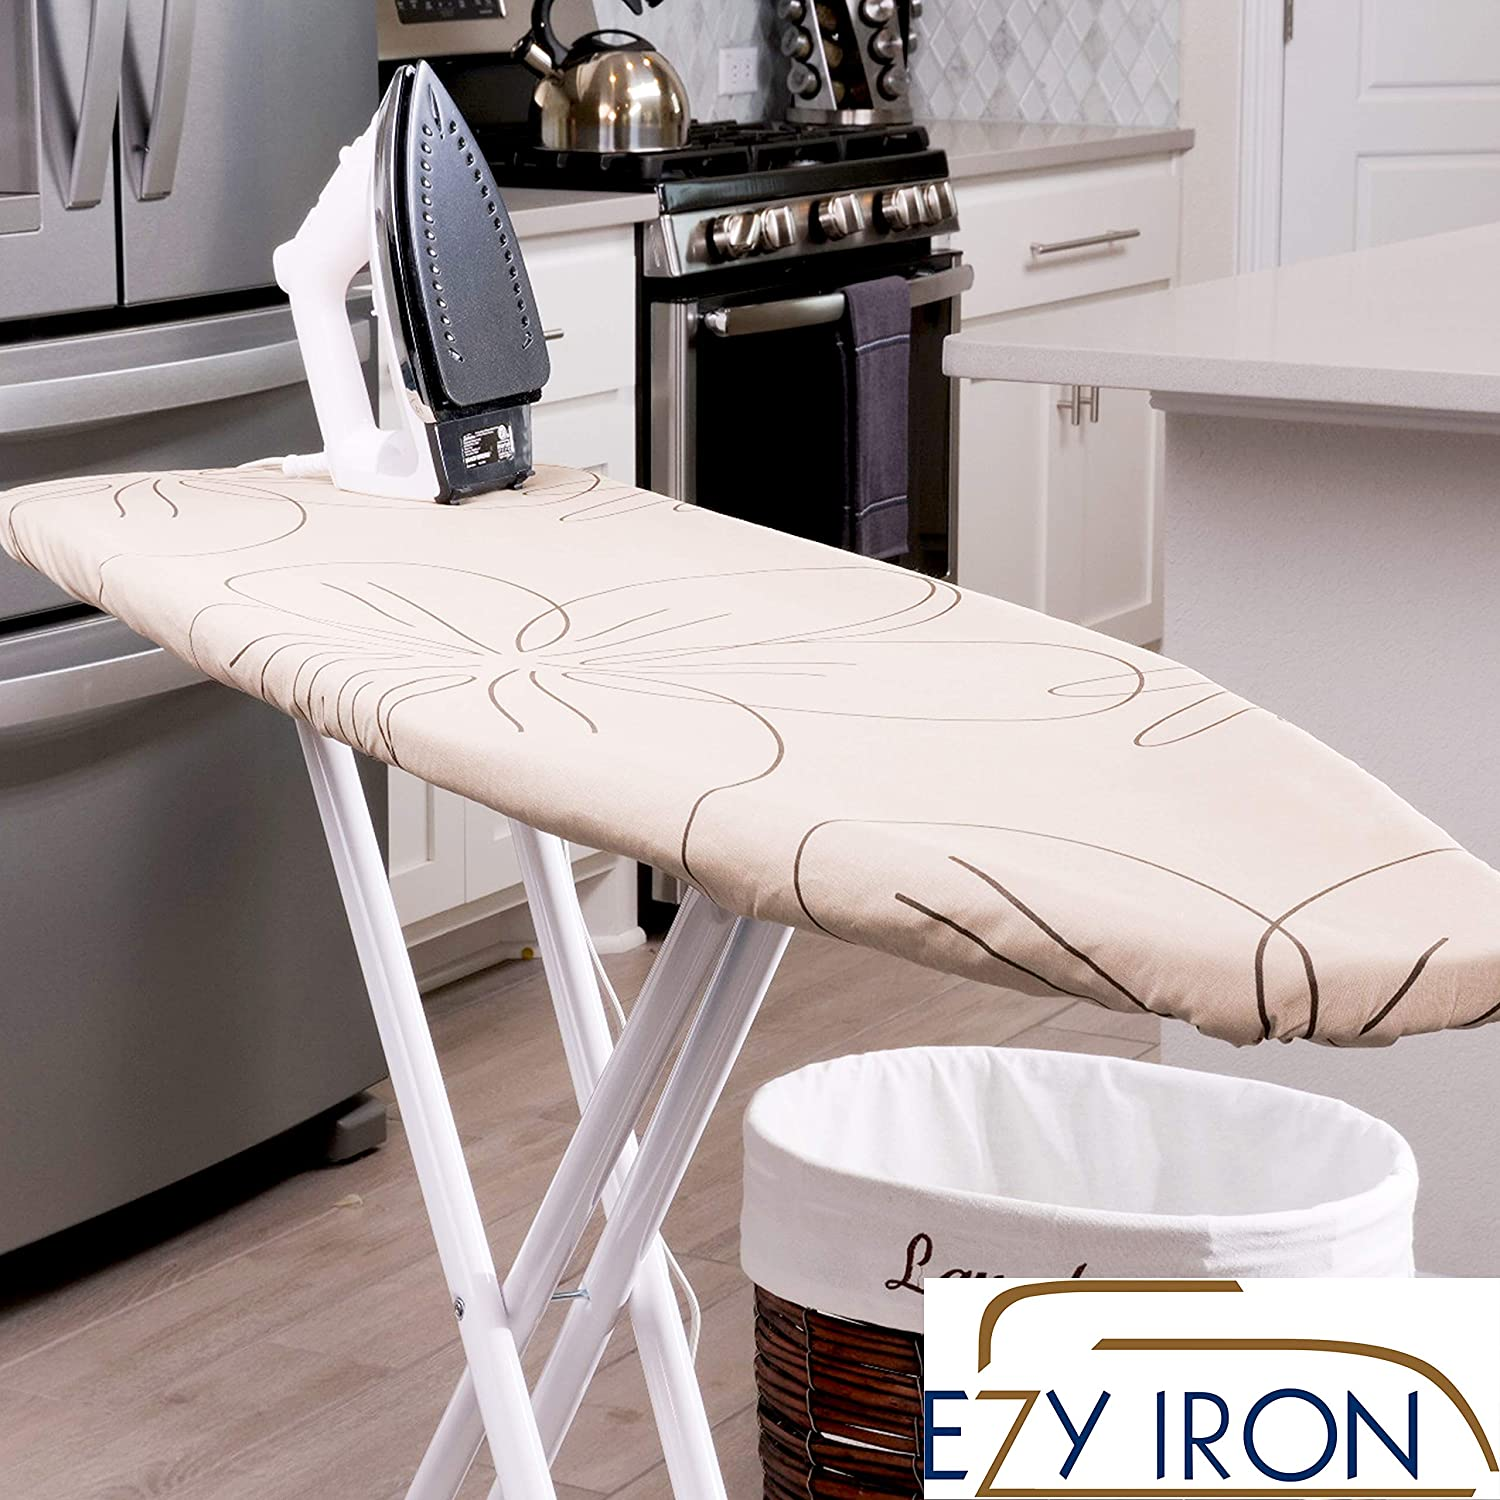 Ezy Iron Padded Ironing Board Cover Thick Padding